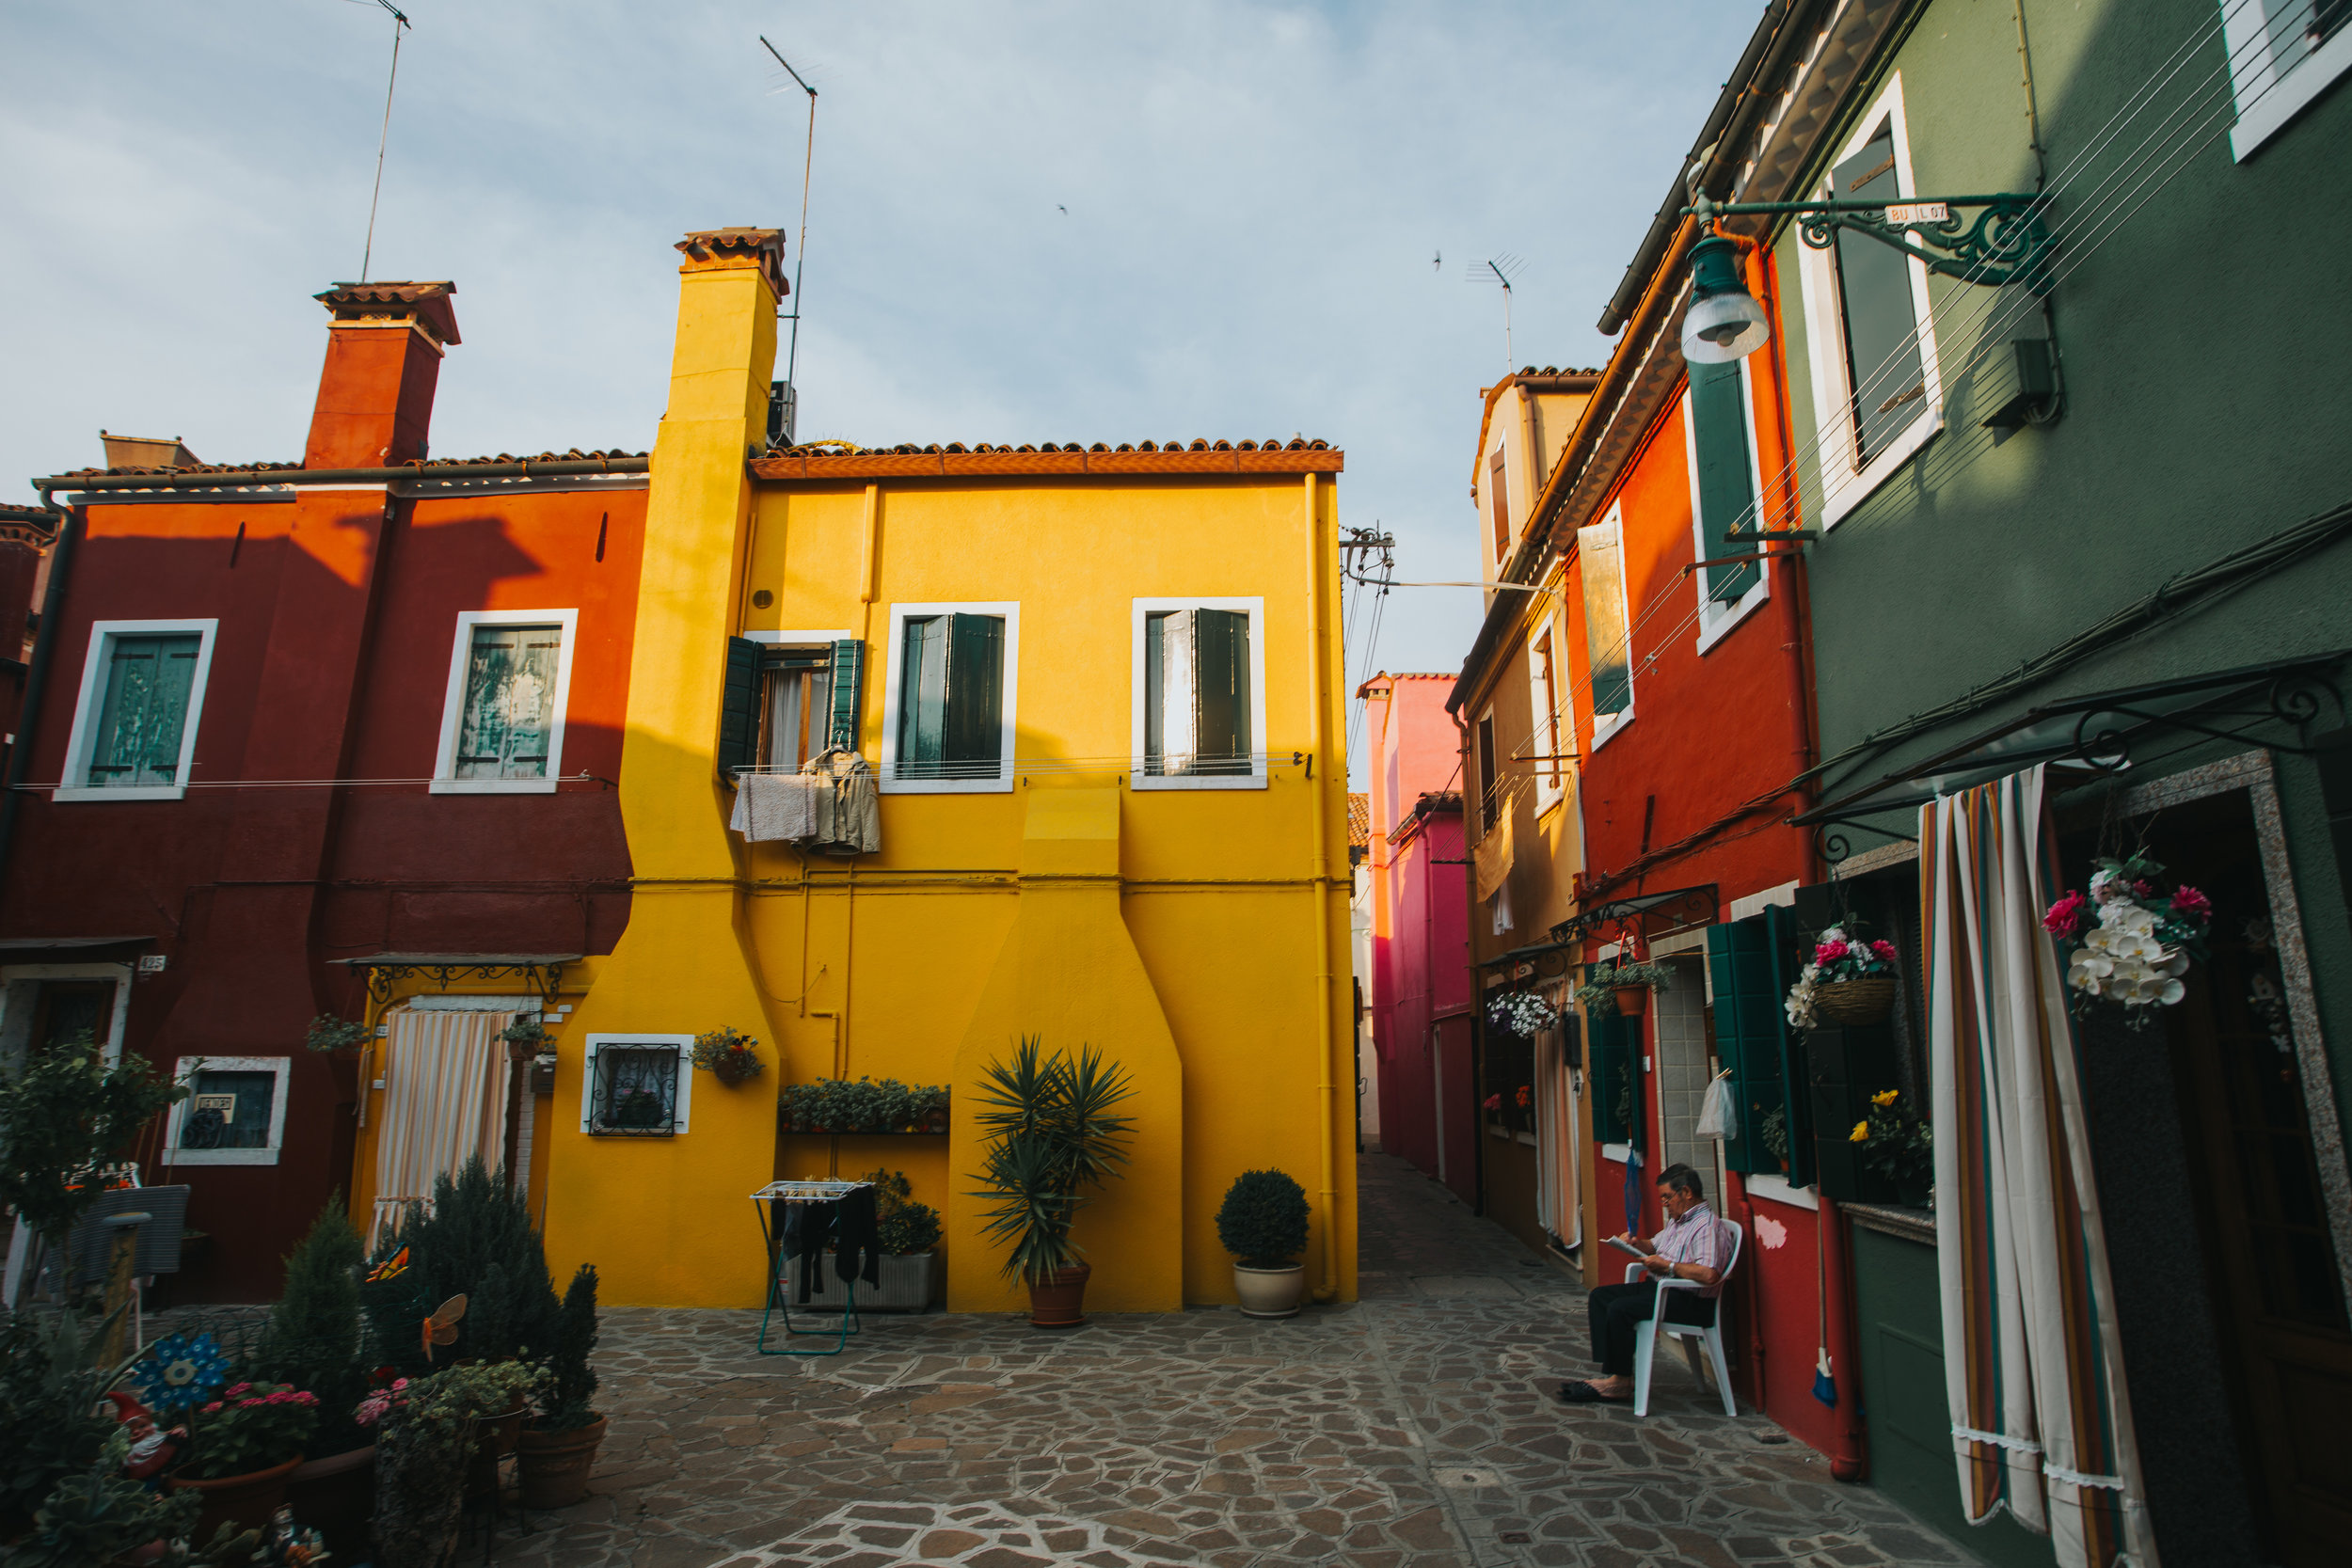 Is it worth going to Burano?